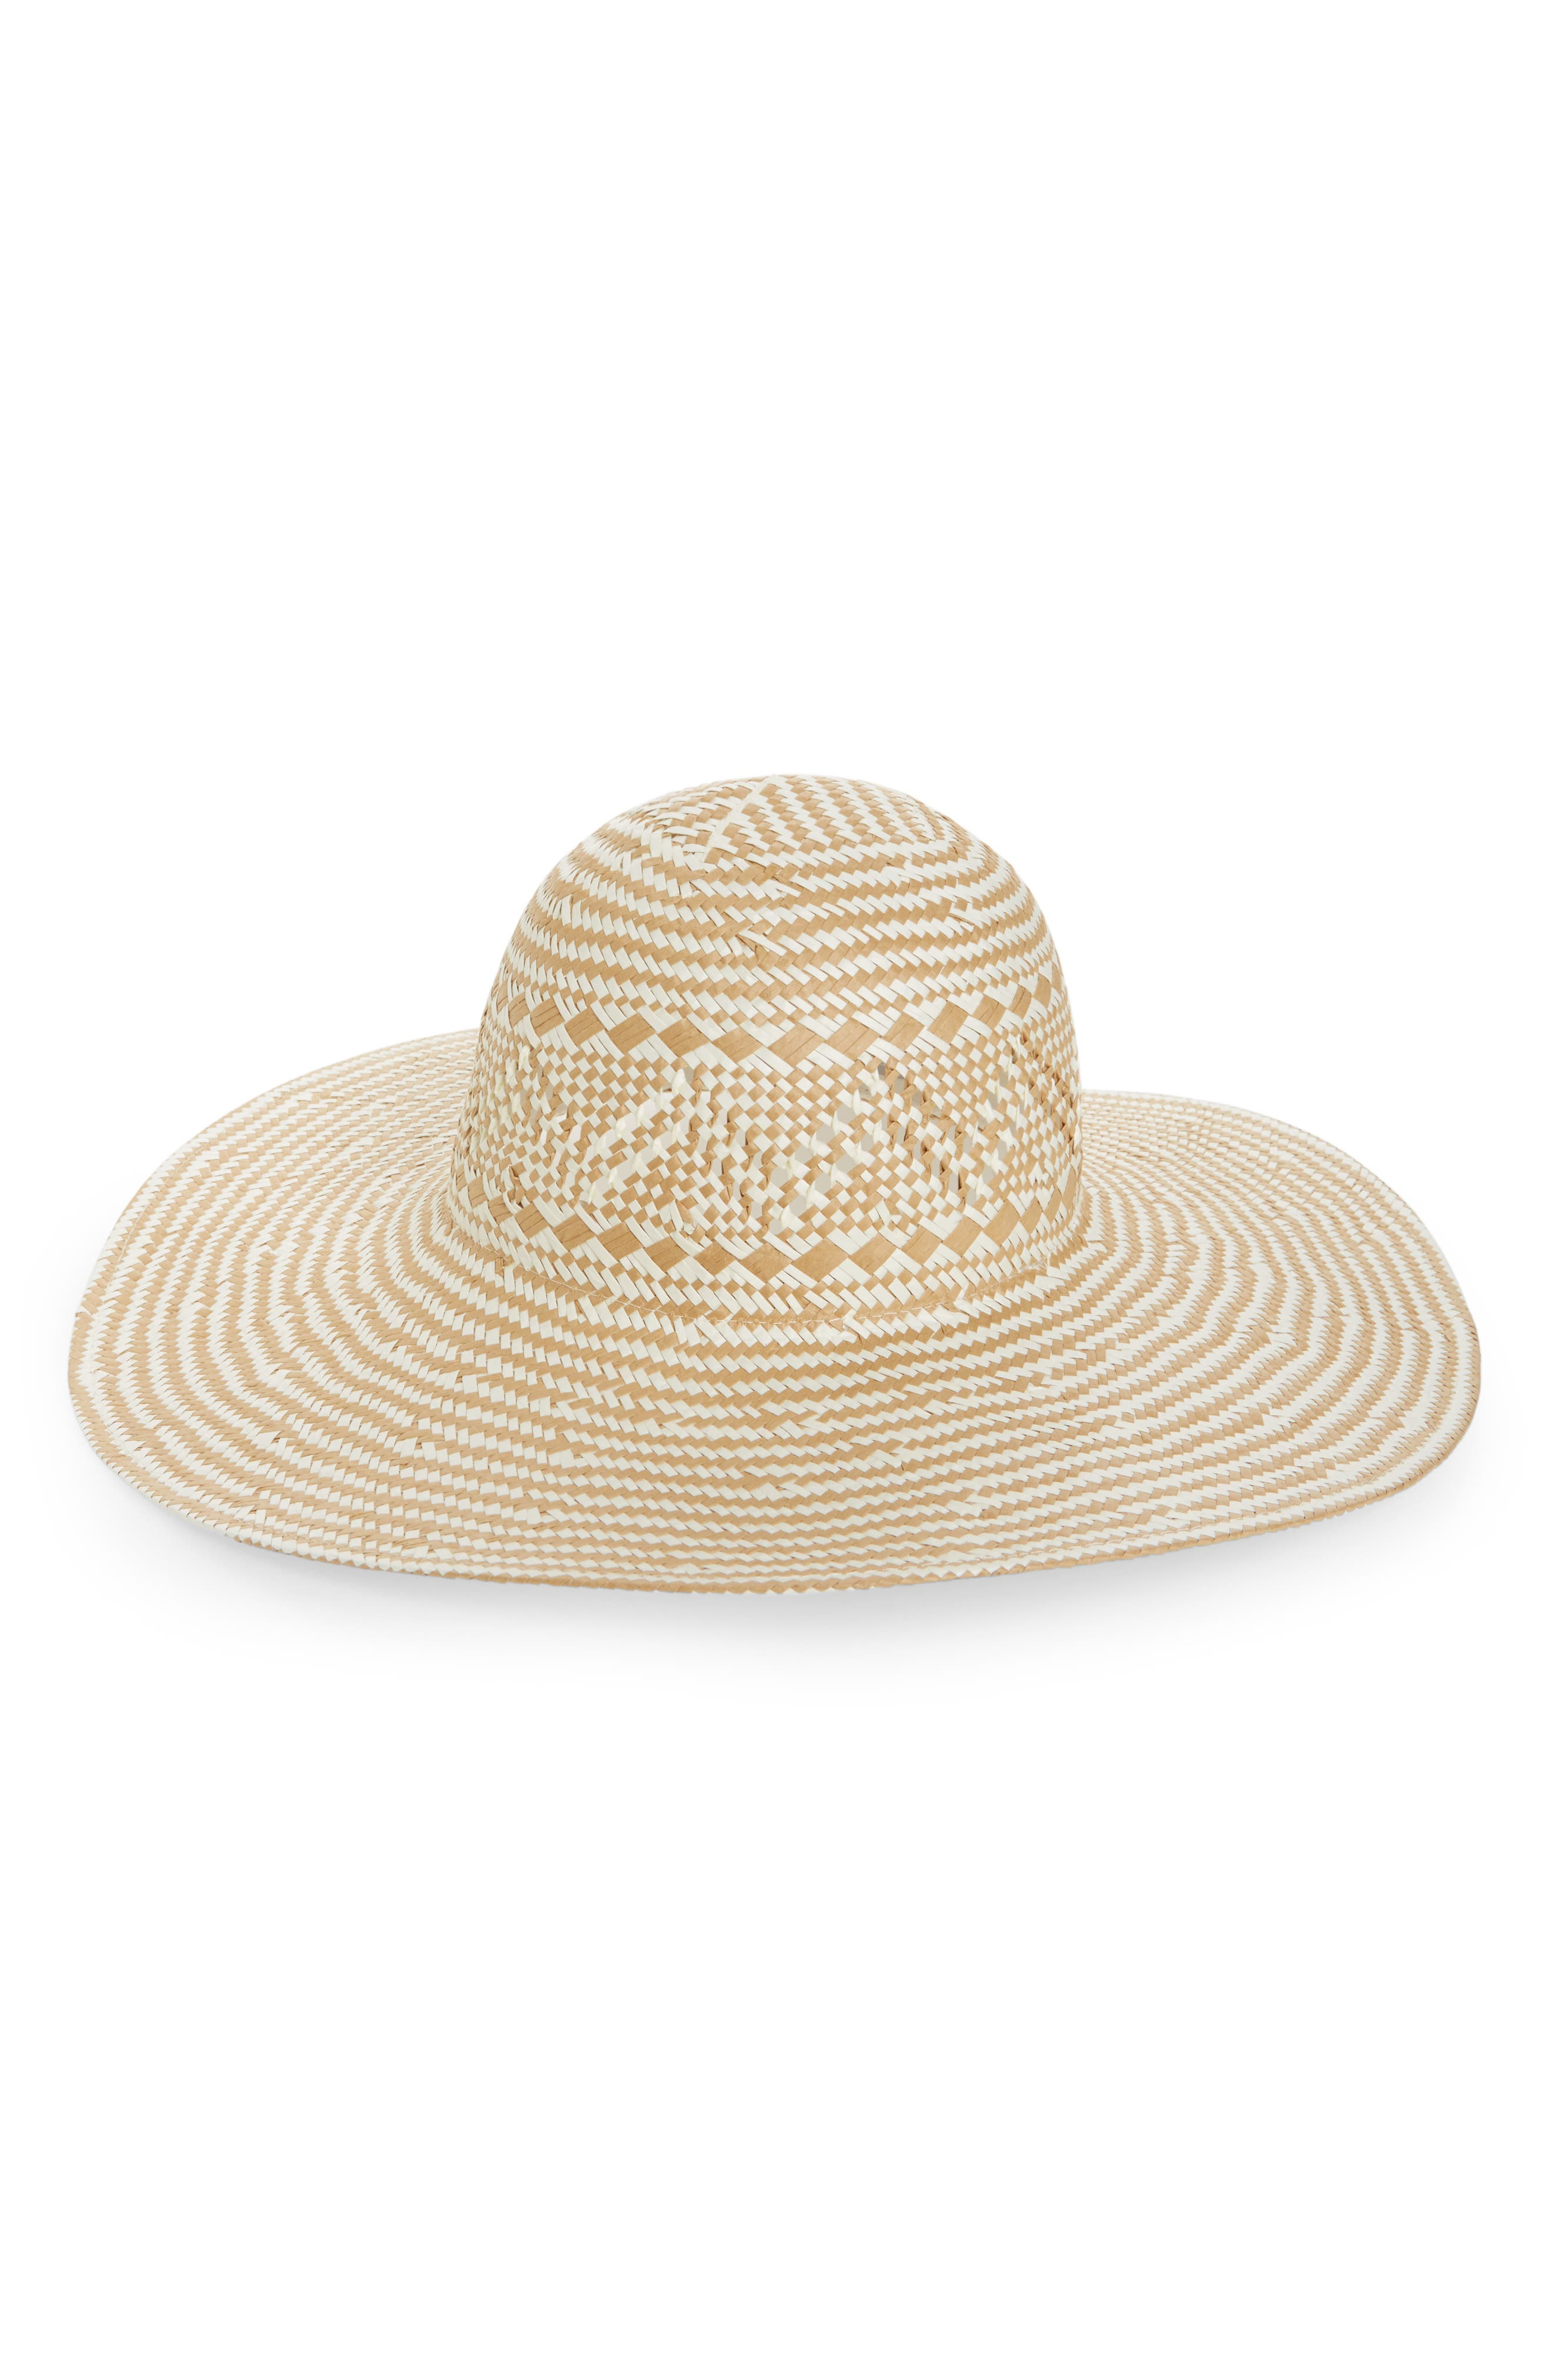 Two-Tone Floppy Straw Hat,                             Main thumbnail 2, color,